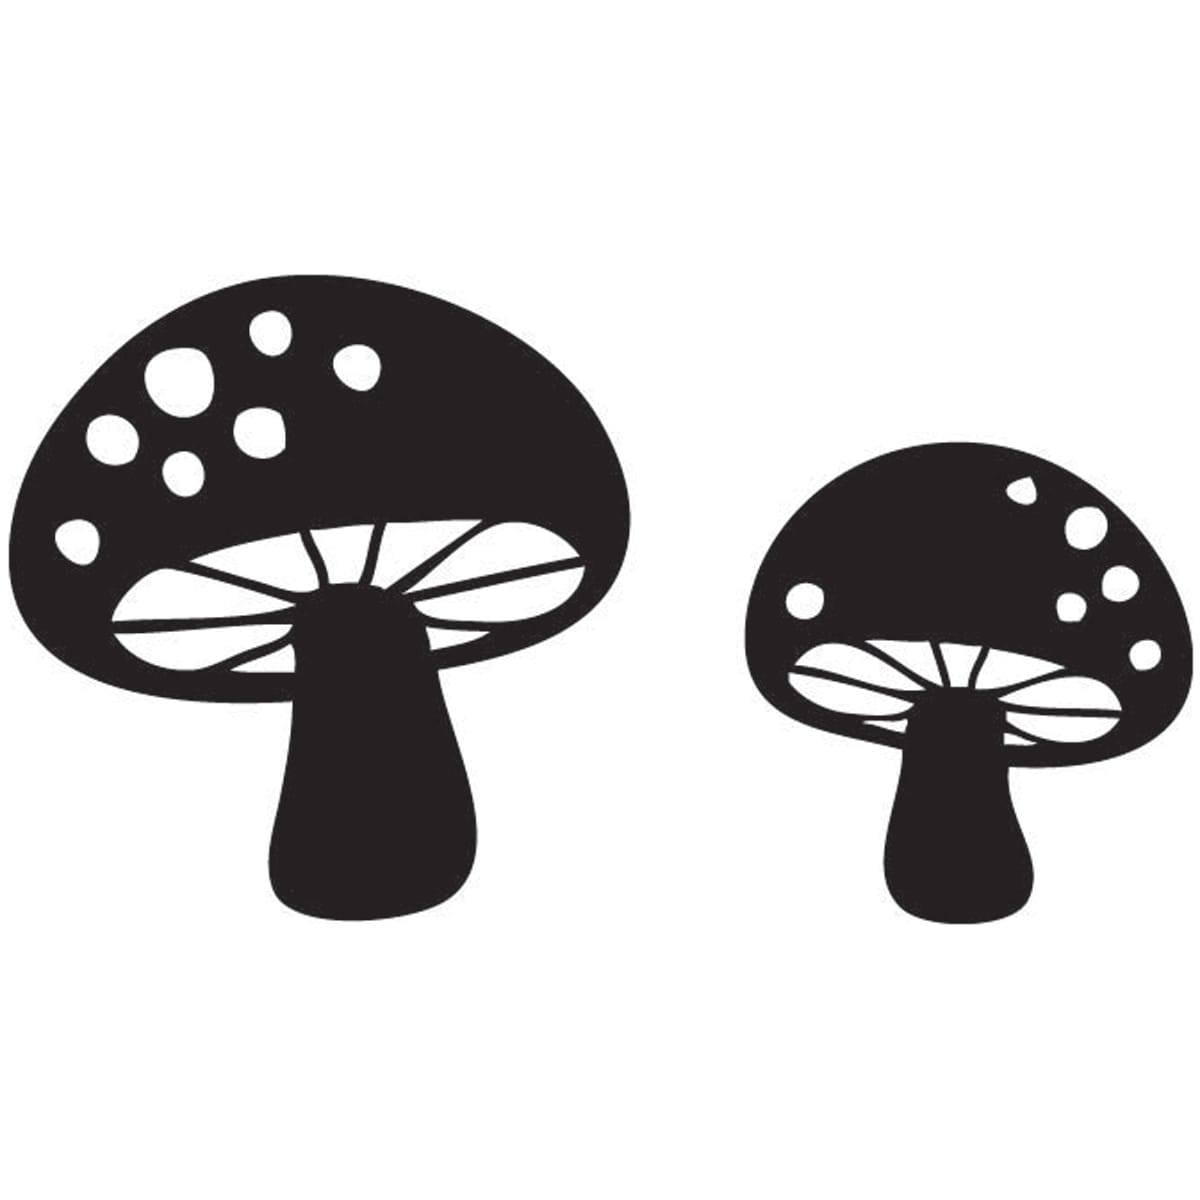 "Mounted Rubber Stamp 1.5""X2.5""-Make Room For Mushrooms"